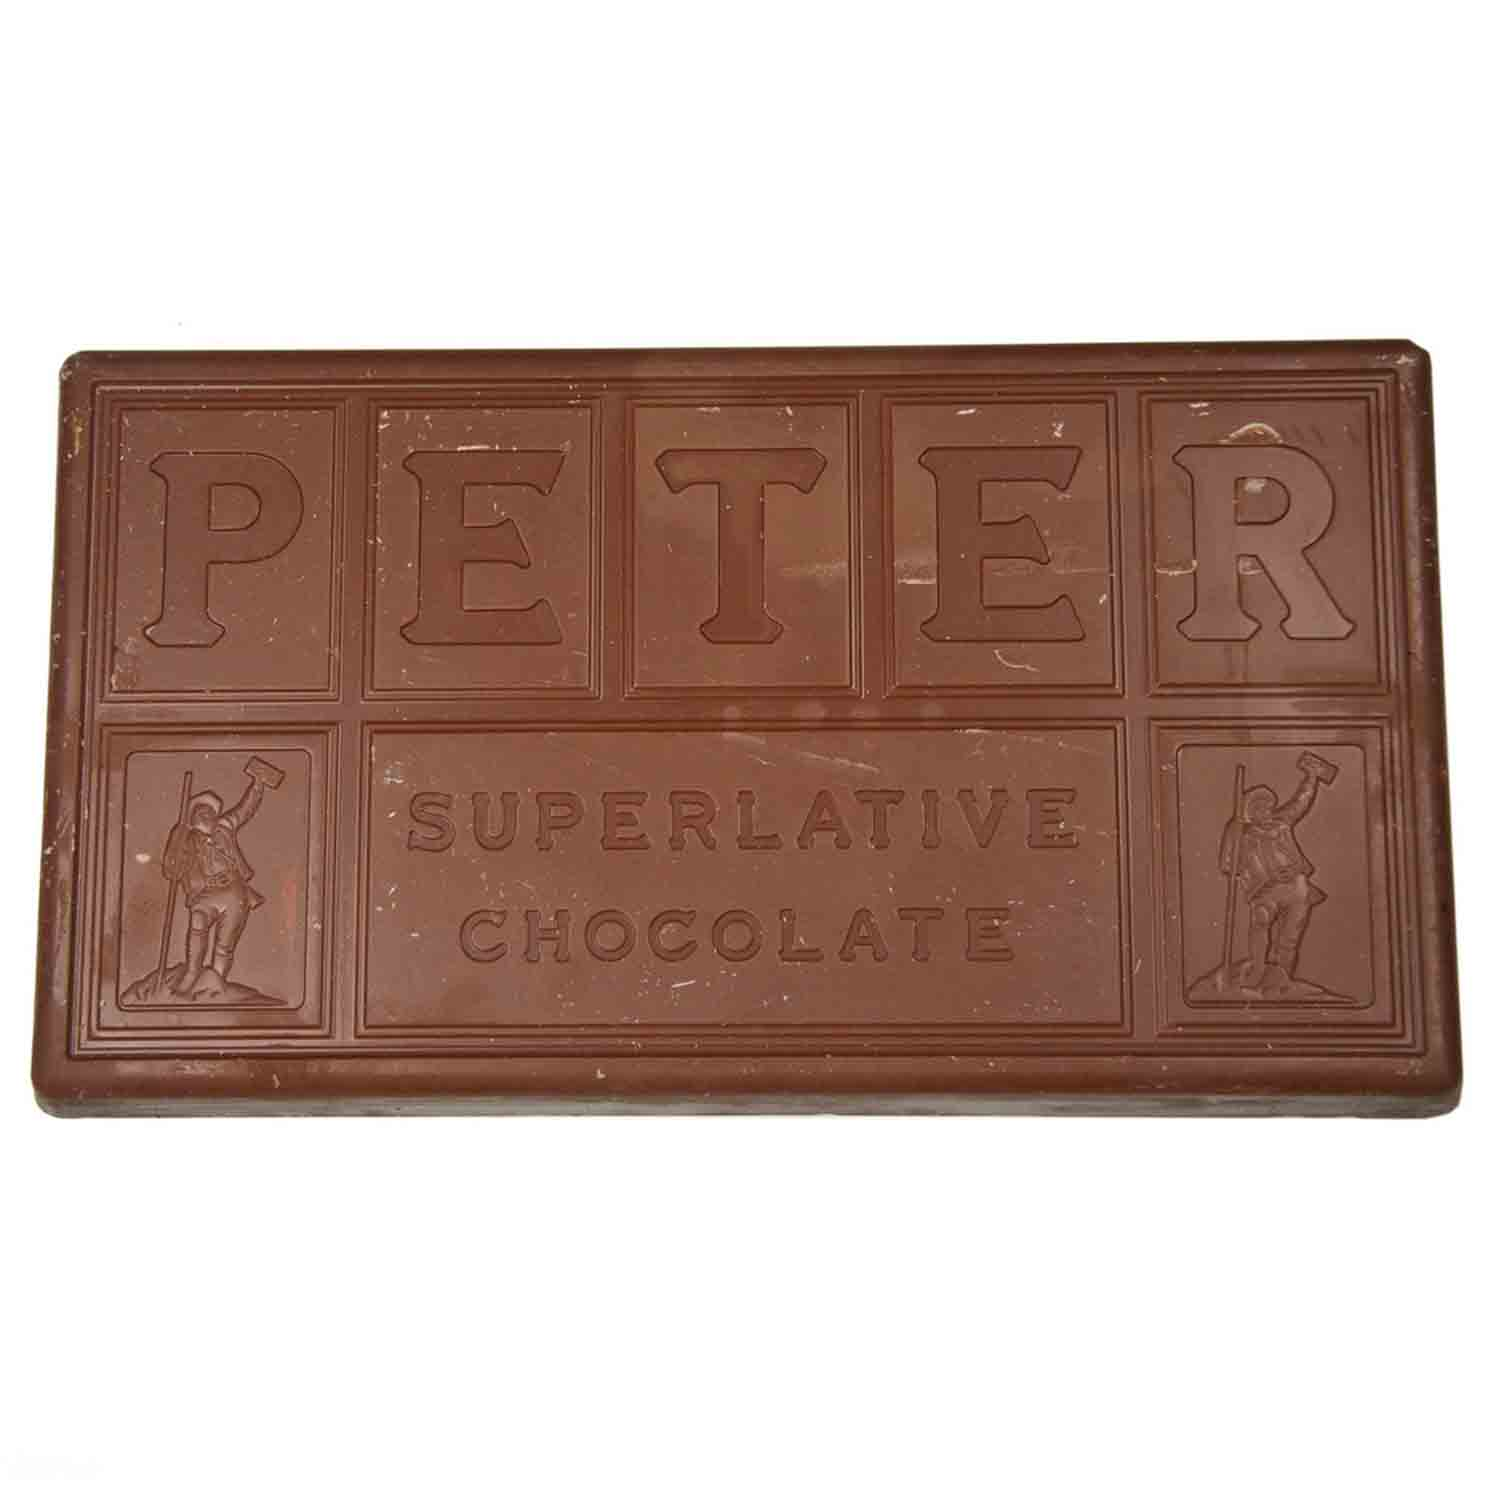 Peter's Broc Real Milk Chocolate